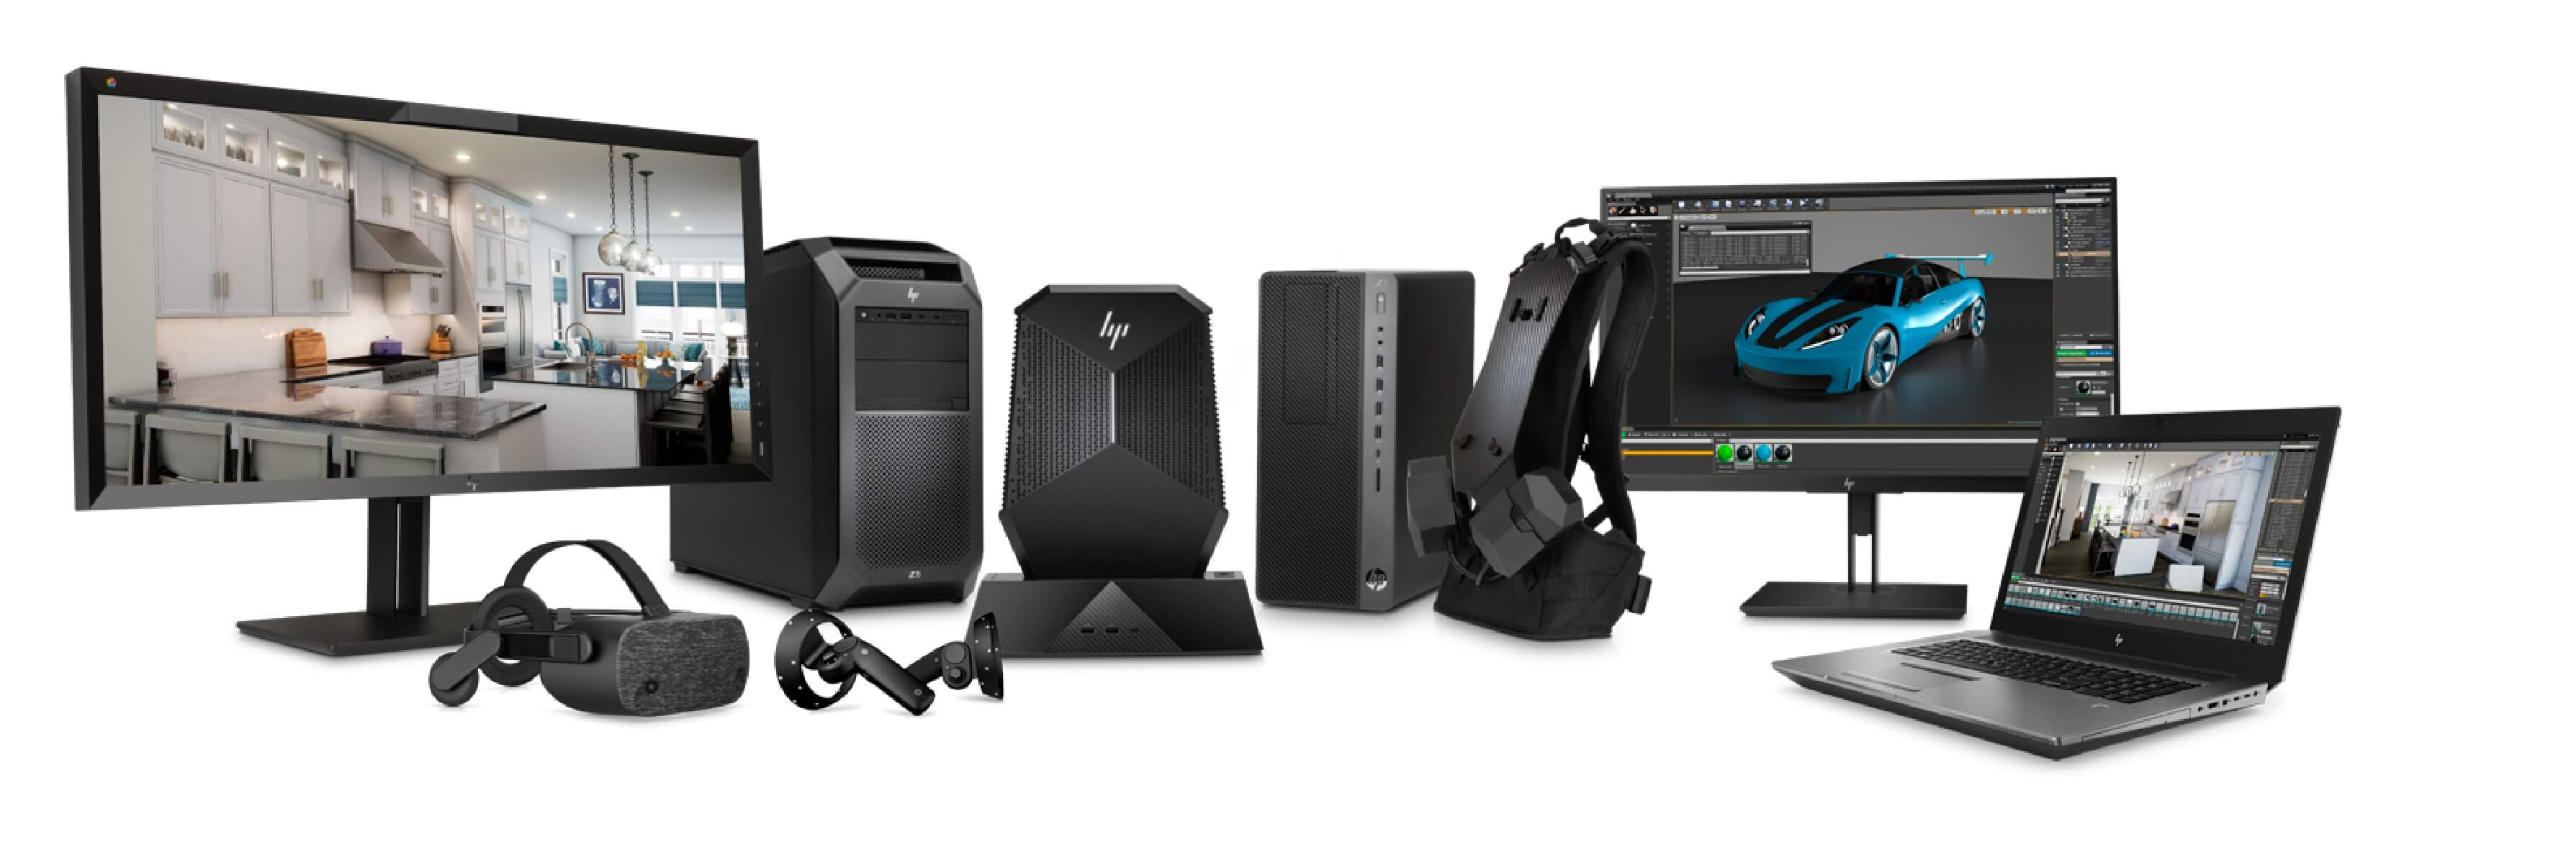 HP VR product assortment of monitors, desktops, headset, handsets, backpacks and laptops